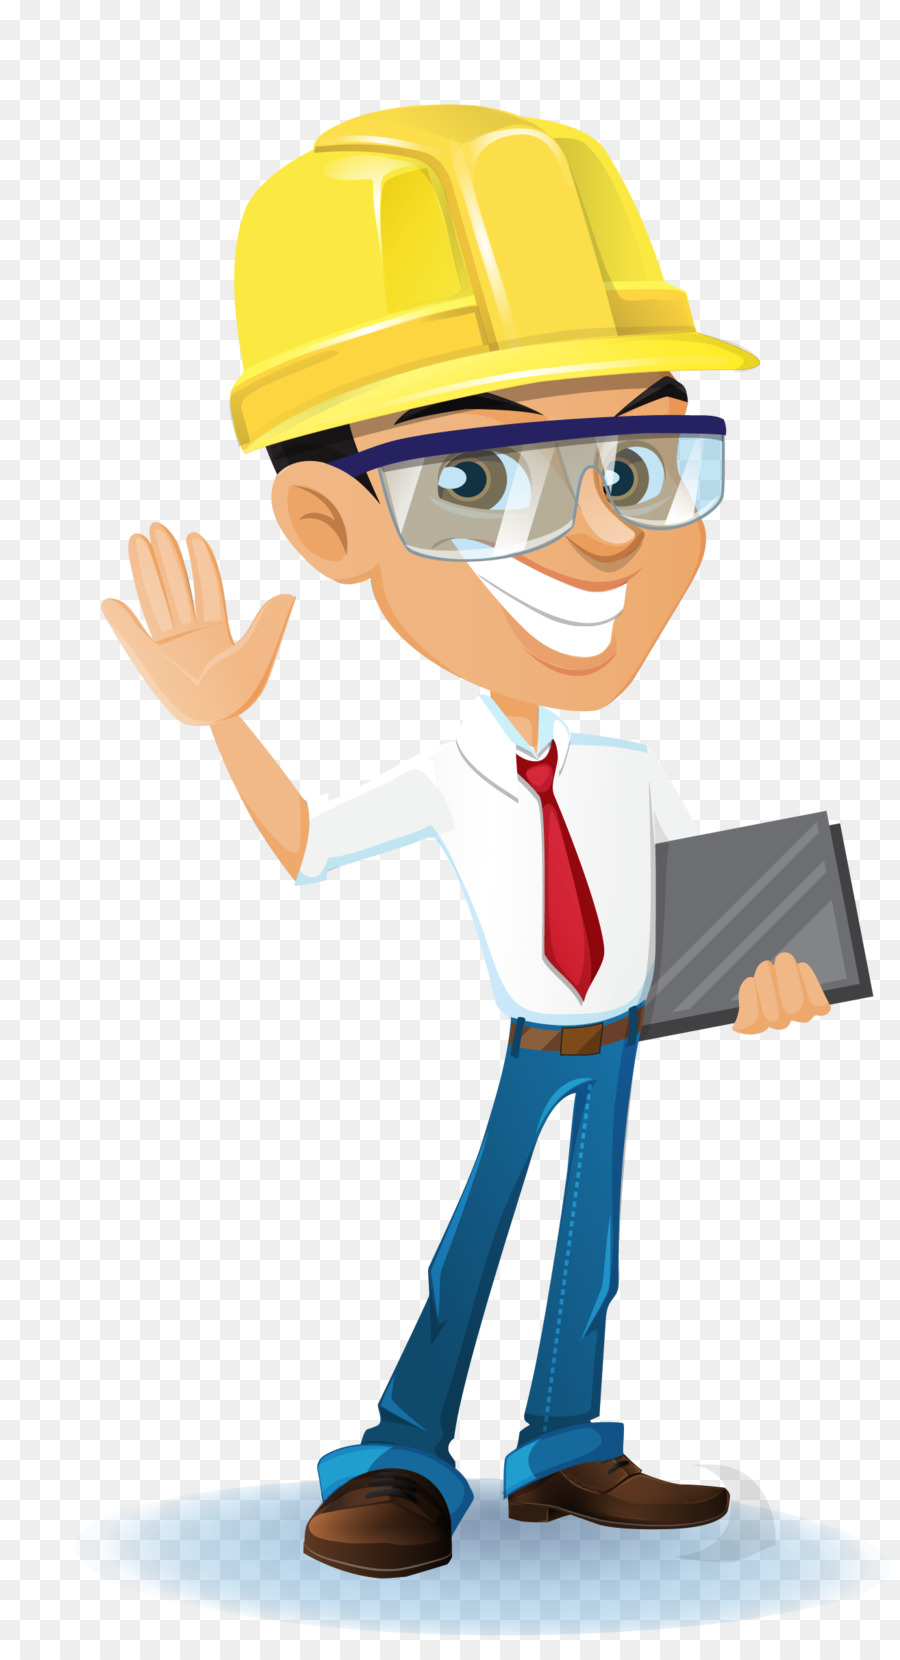 900x1660 Architectural Engineering Clip Art